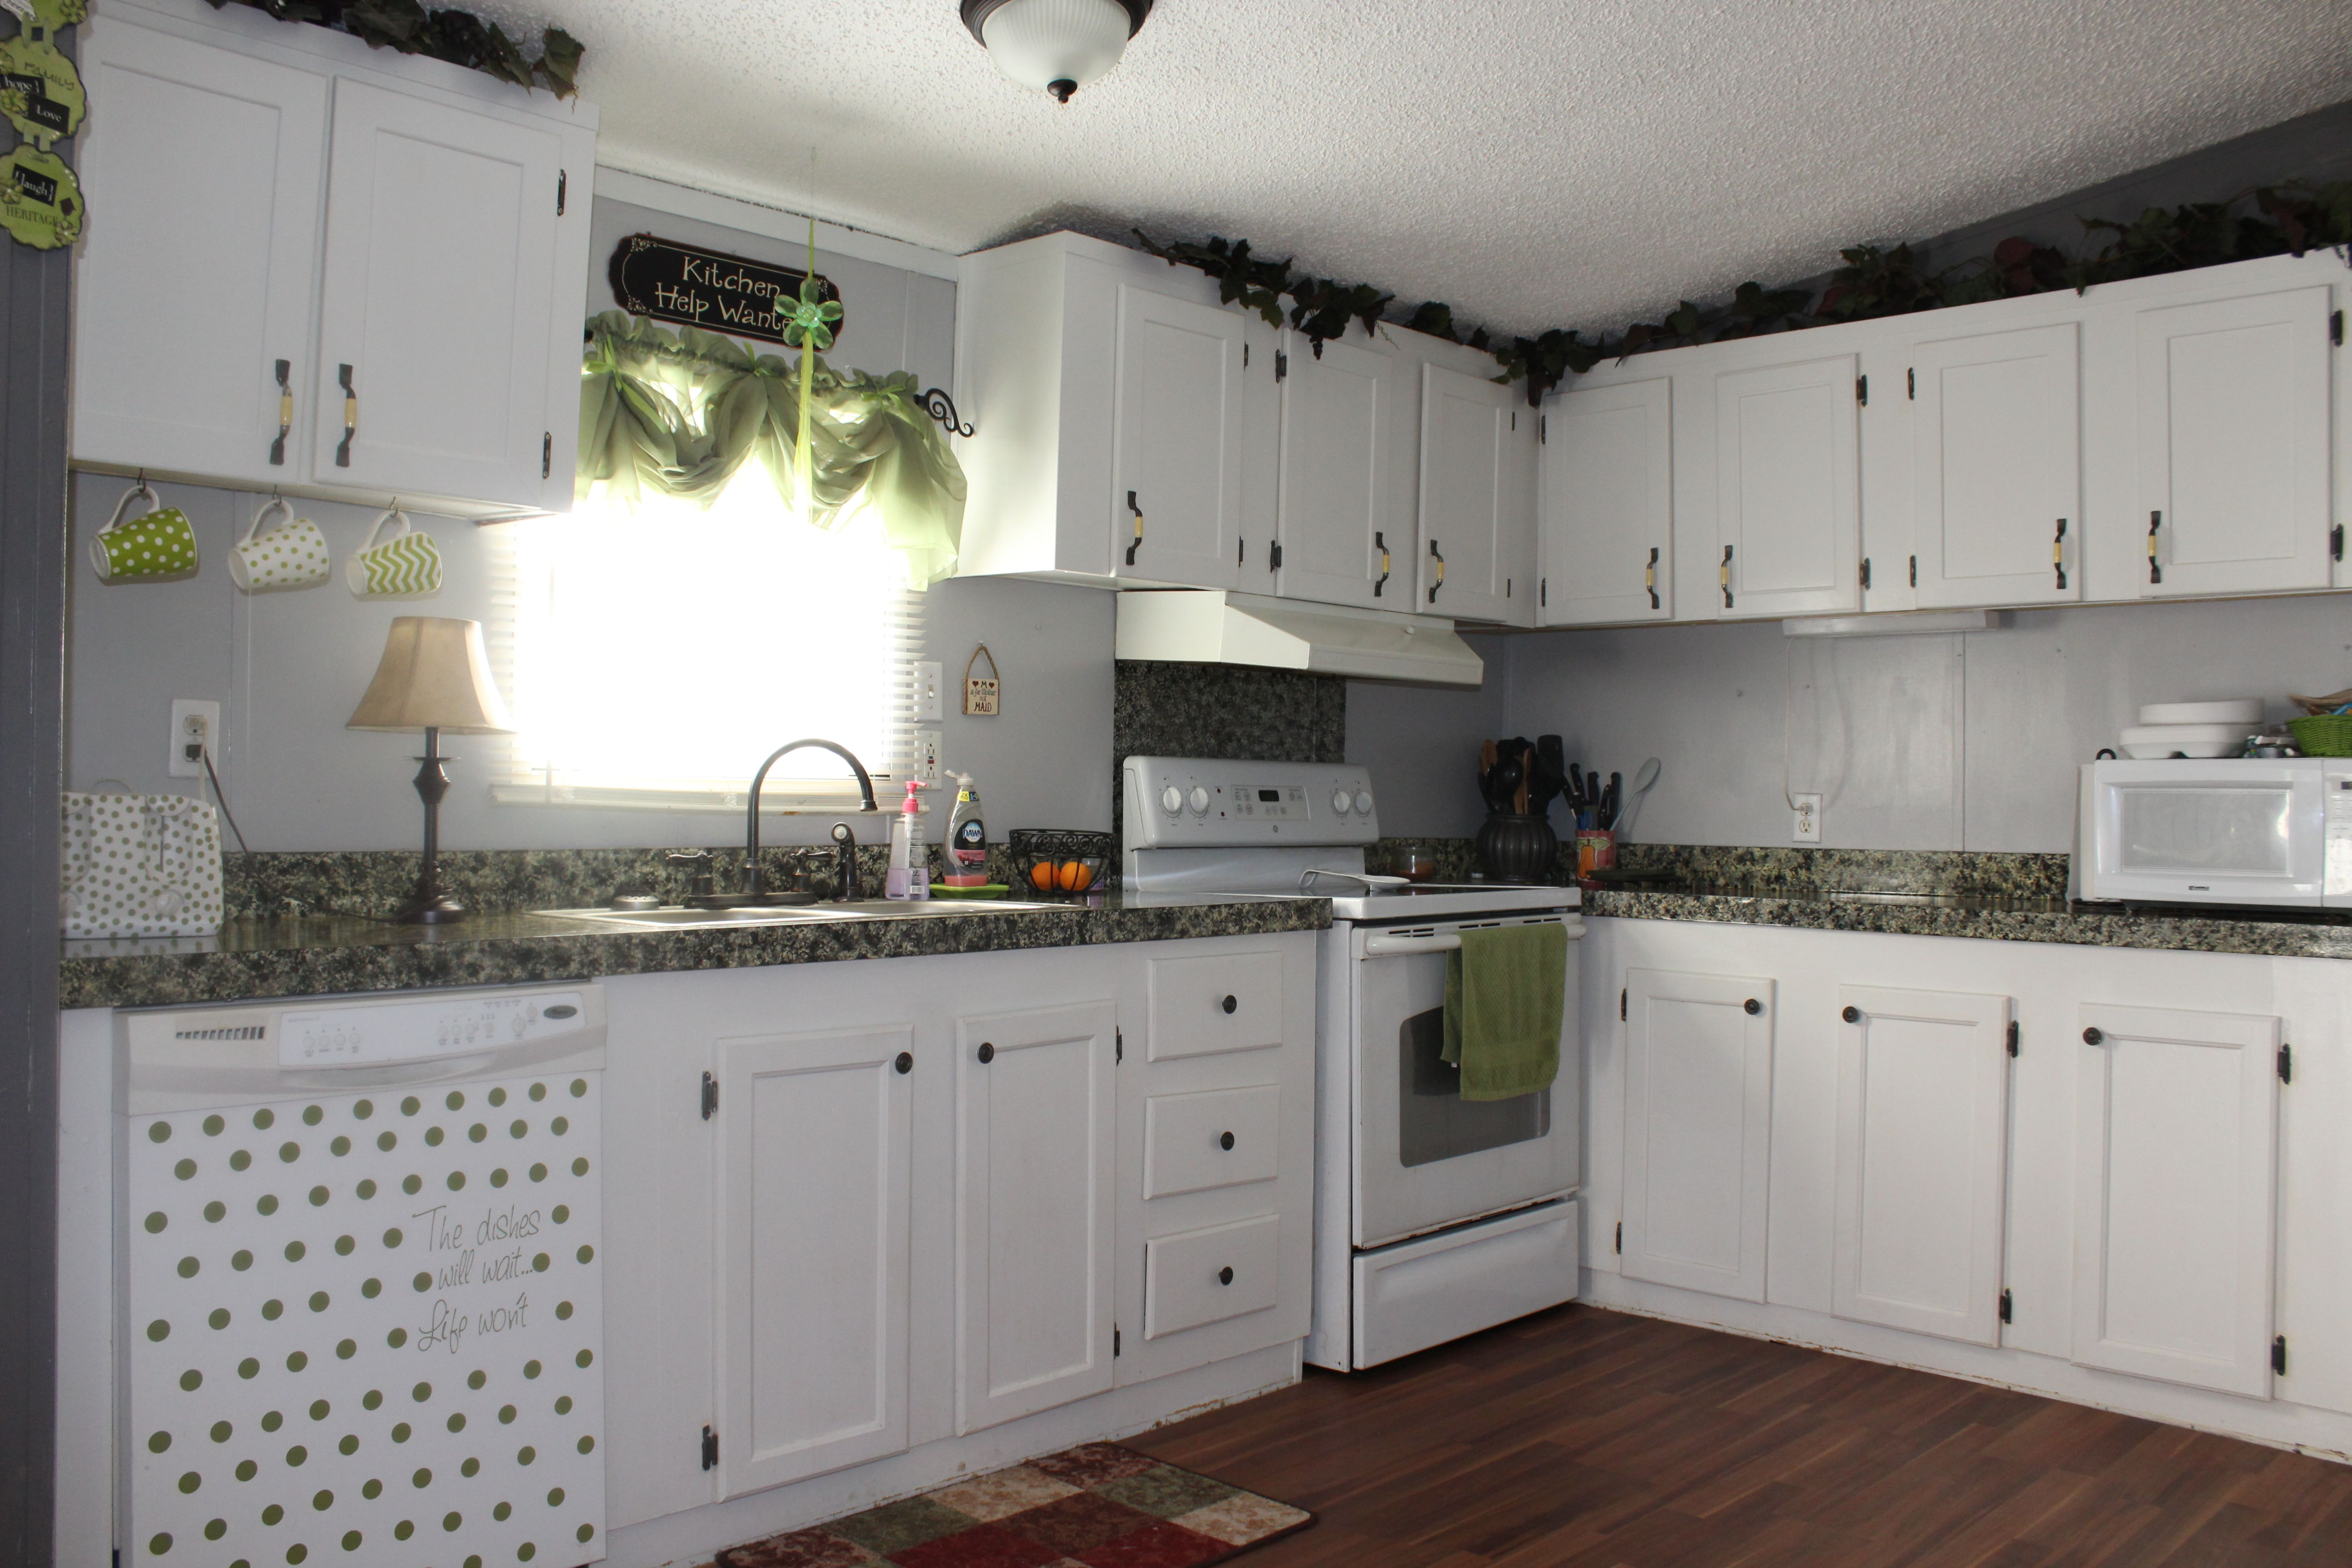 single wide mobile home kitchen update www.tralacelife ...